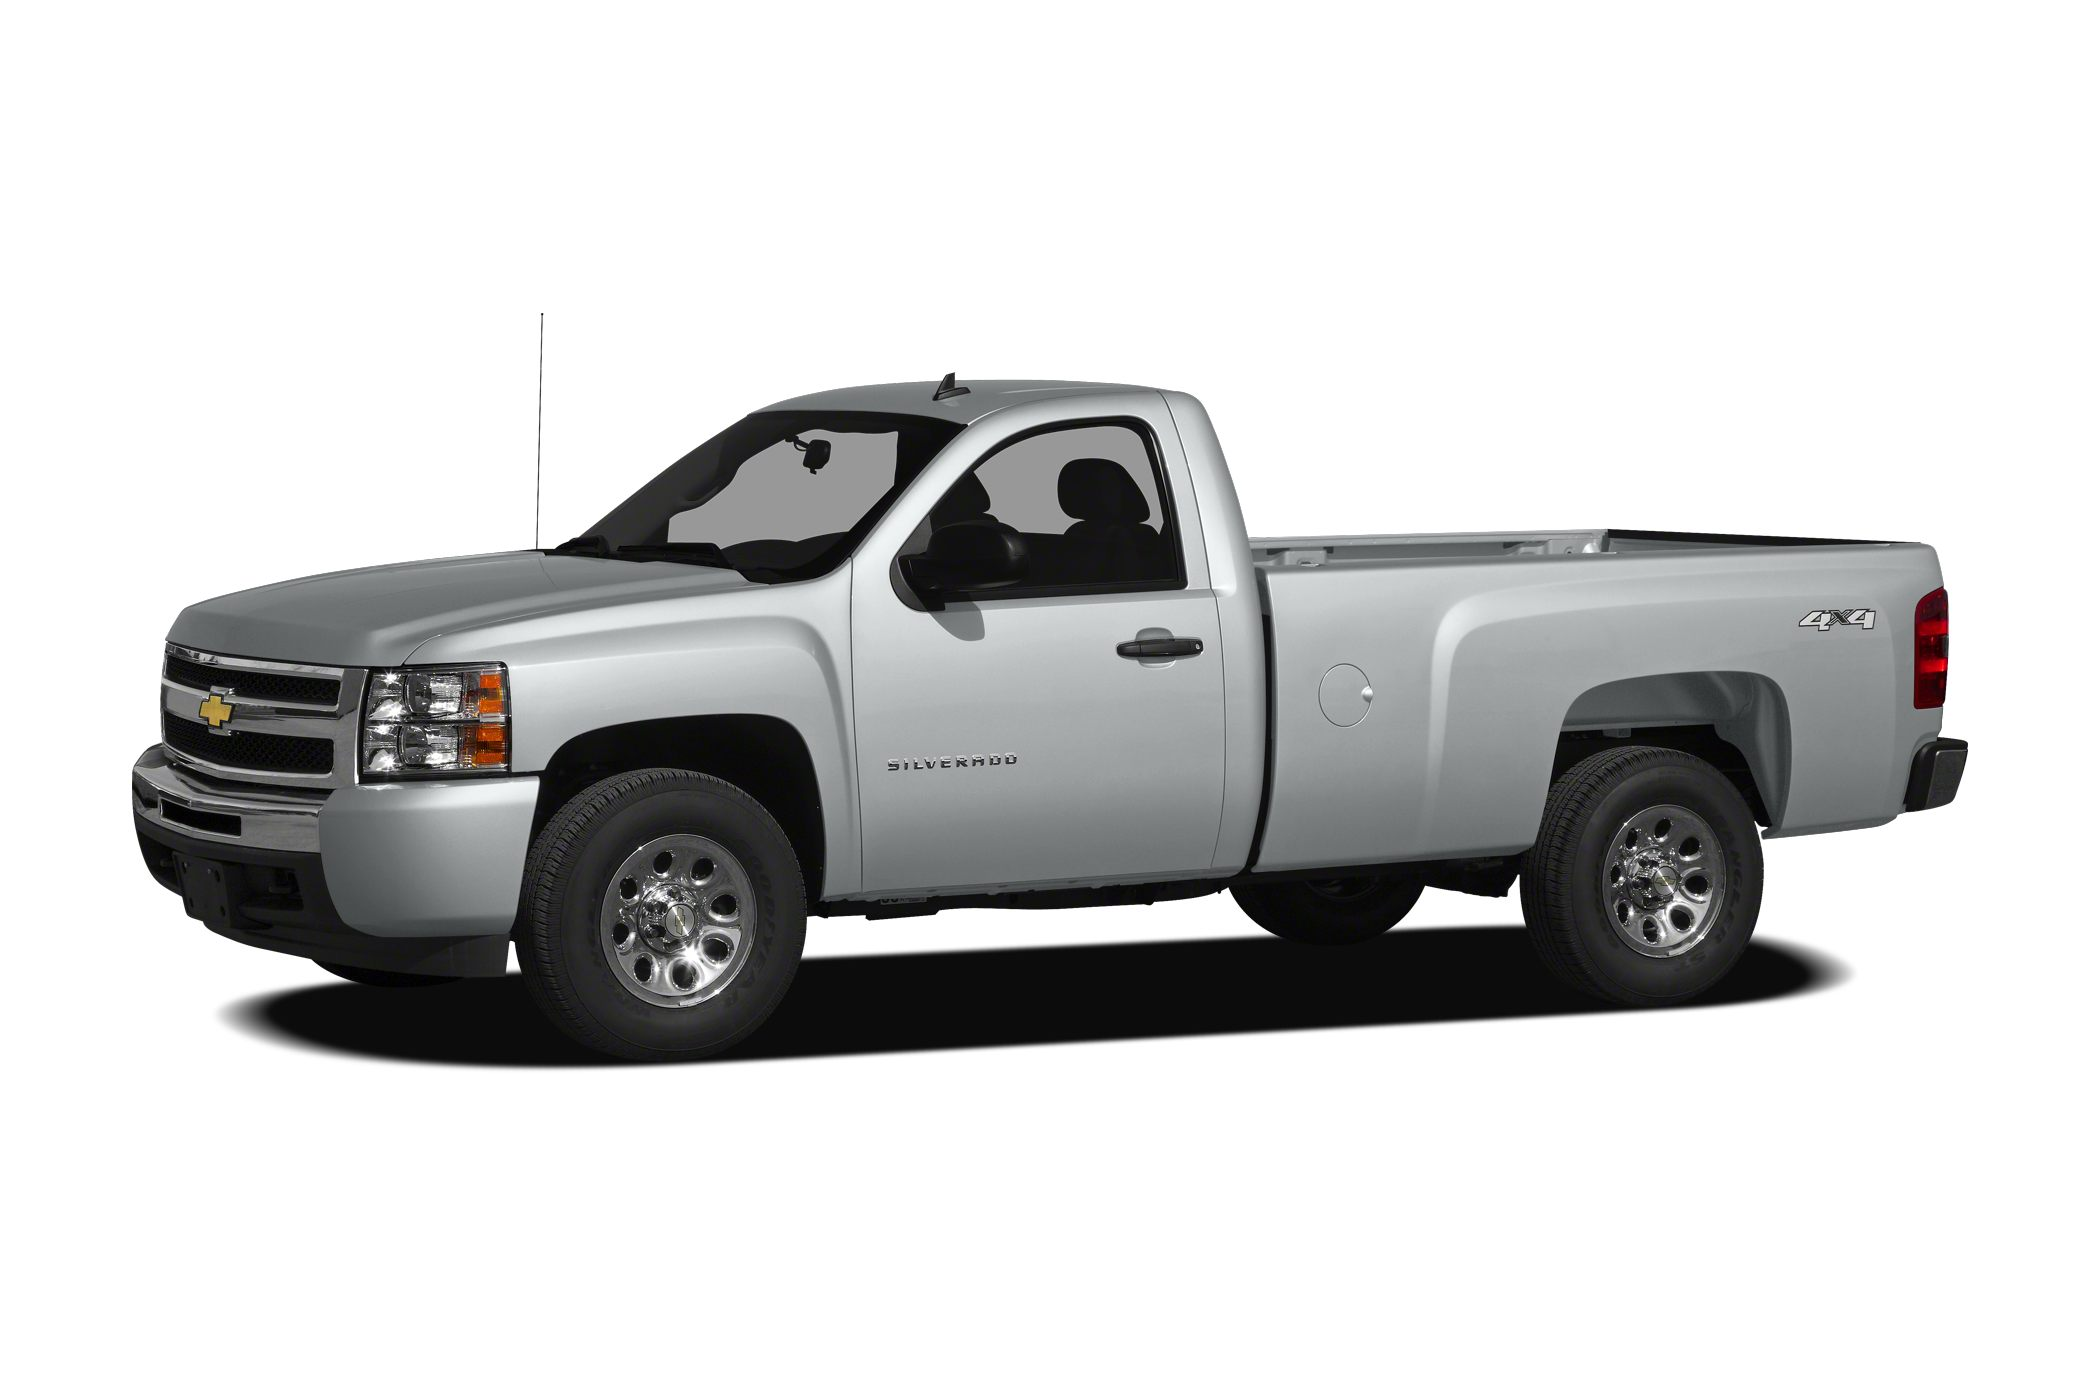 2011 Chevrolet Silverado 1500 Work Truck Extended Cab Pickup for sale in Zachary for $18,400 with 76,695 miles.